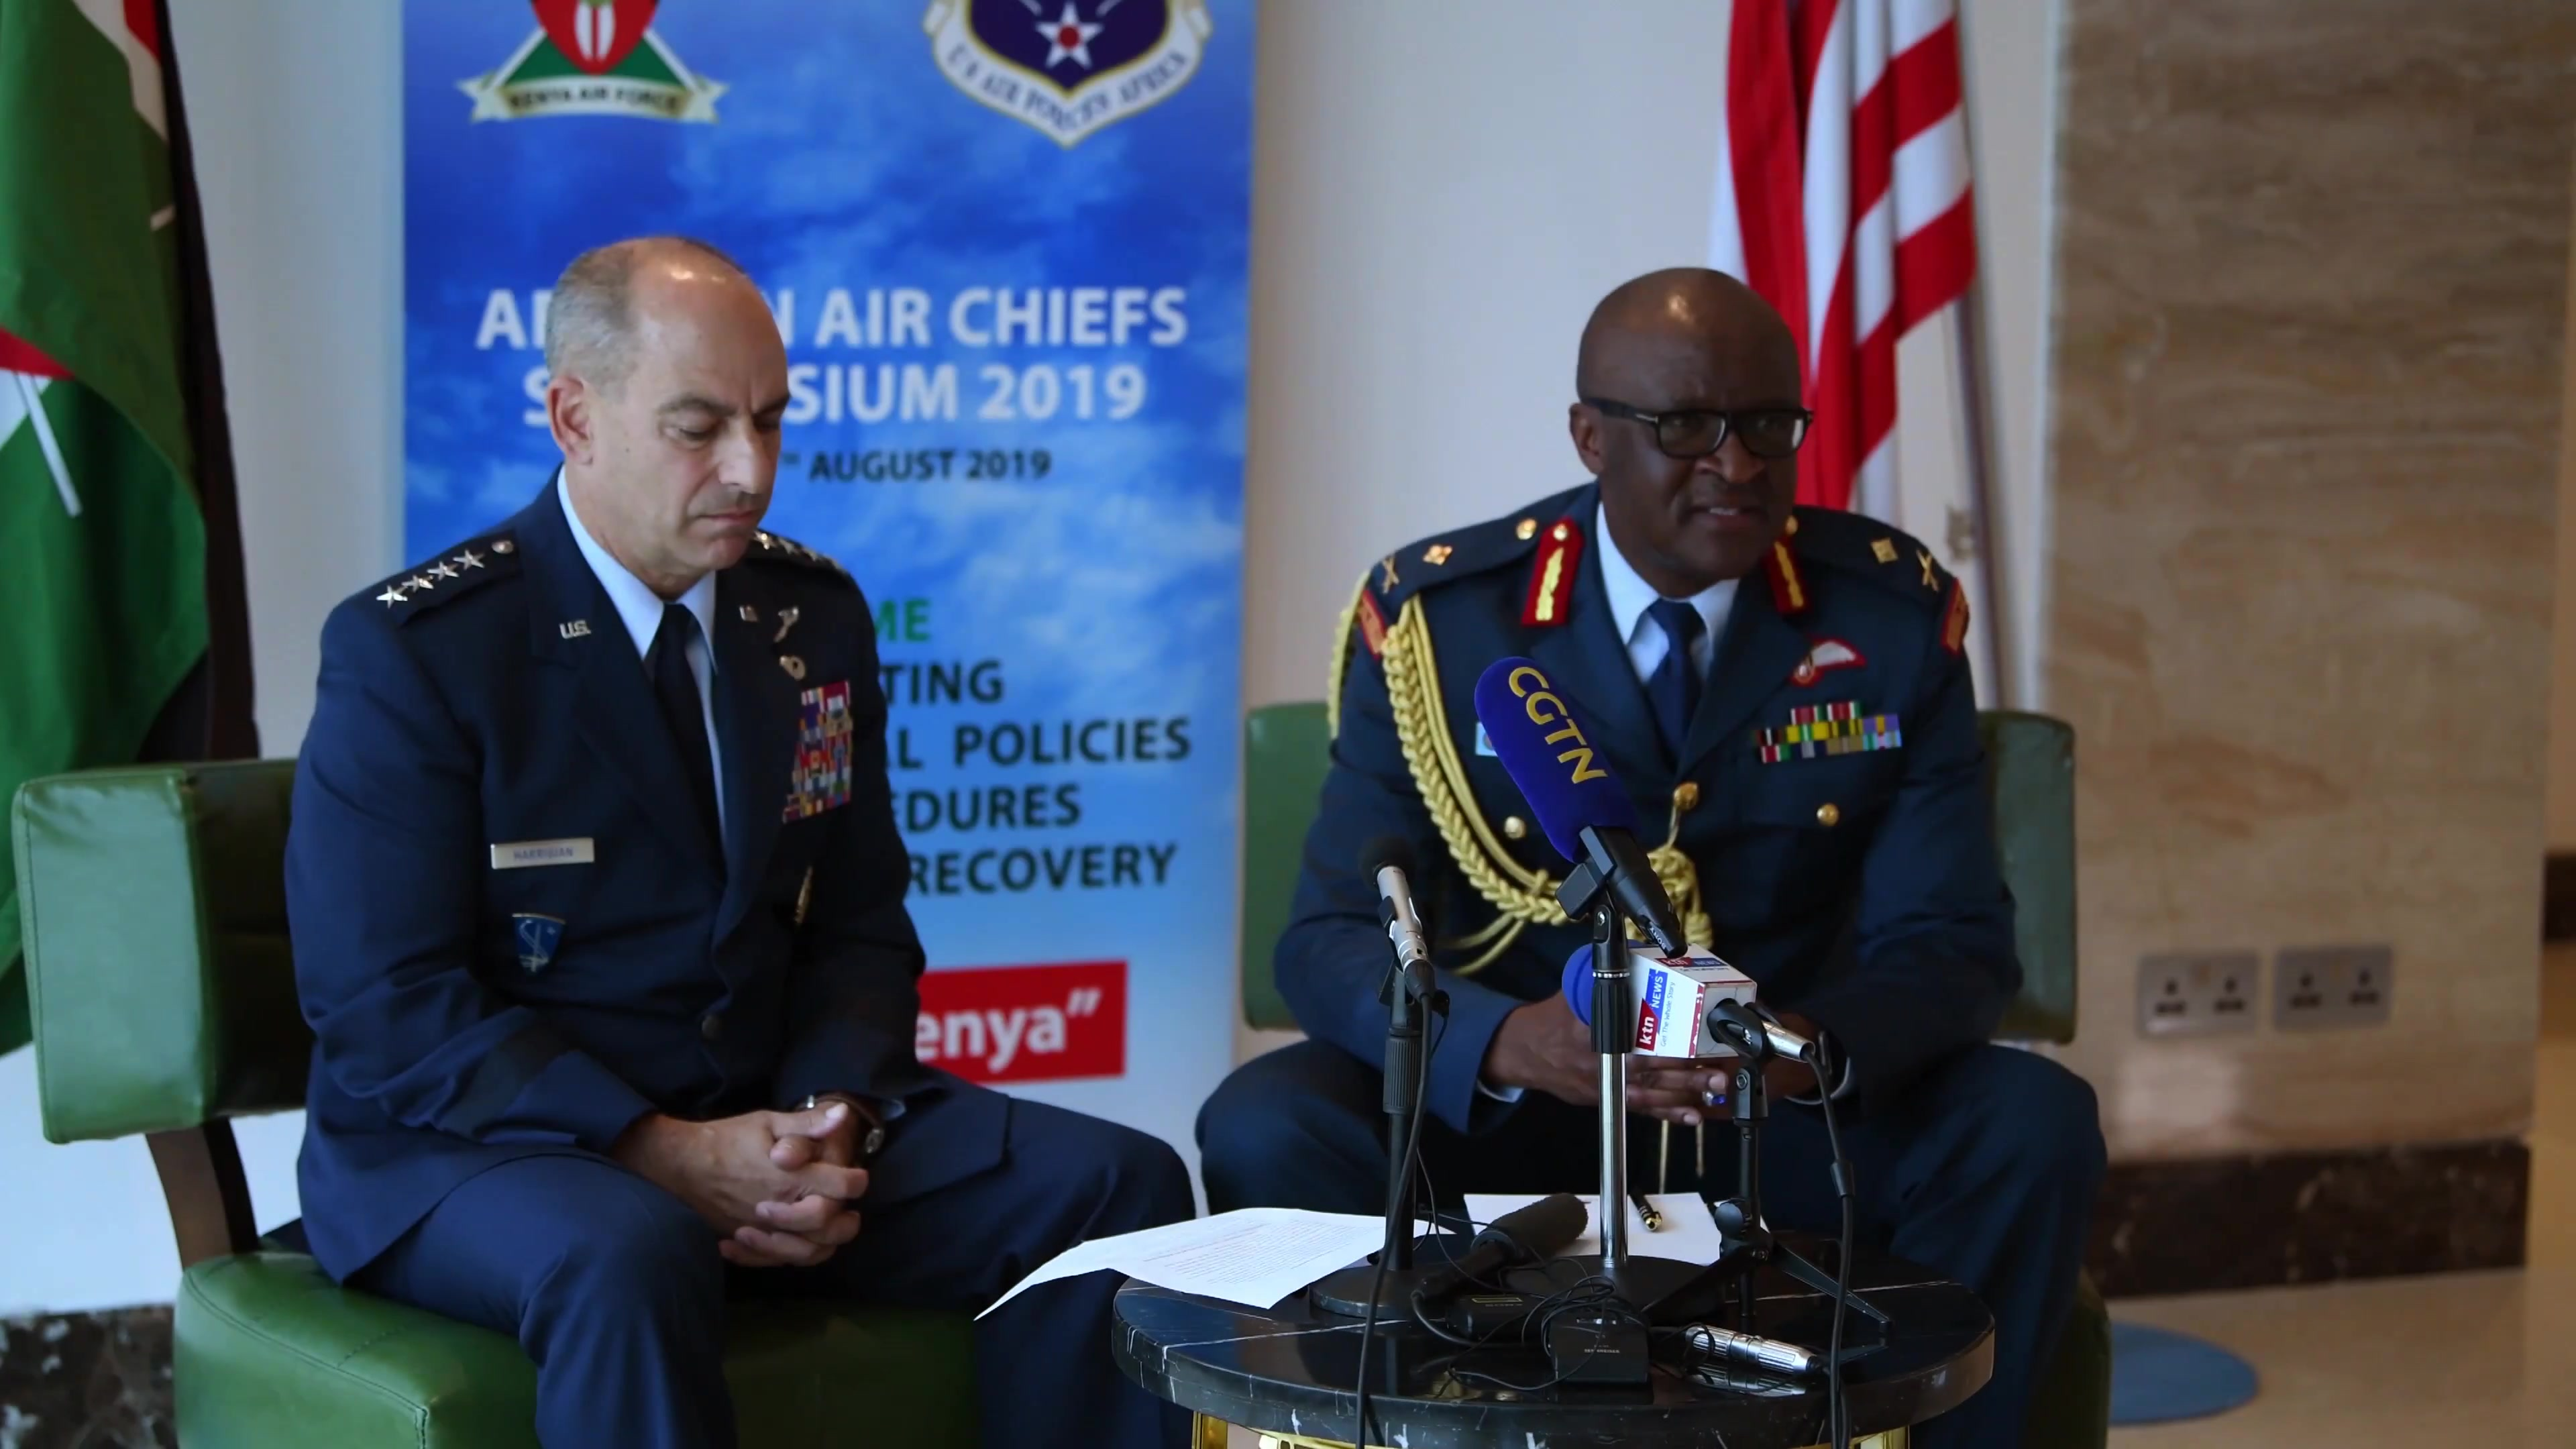 US Air Africa (AFAFRICA), along with the Kenyan Air Force, hosts the 9th annual African Air Chief's Symposium (AACS) in Nairobi, Kenya, August 26-29th 2019. A press conference was held with General Jeffrey Harrigian, Air Forces Europe- Air Forces Africa Commander and Major General Francis Ogolla, Kenya Air Force Commander. More than 40 Air Force delegates from 38 partner nations are participating in the event. This year's AACS includes a variety of engagement opportunities for participating nations to identify key challenges confronting African Air Chief's, strengthen partner networks, discuss inter-operable policies and procedures for personnel recovery and share best practices for enhancing partner capabilities.